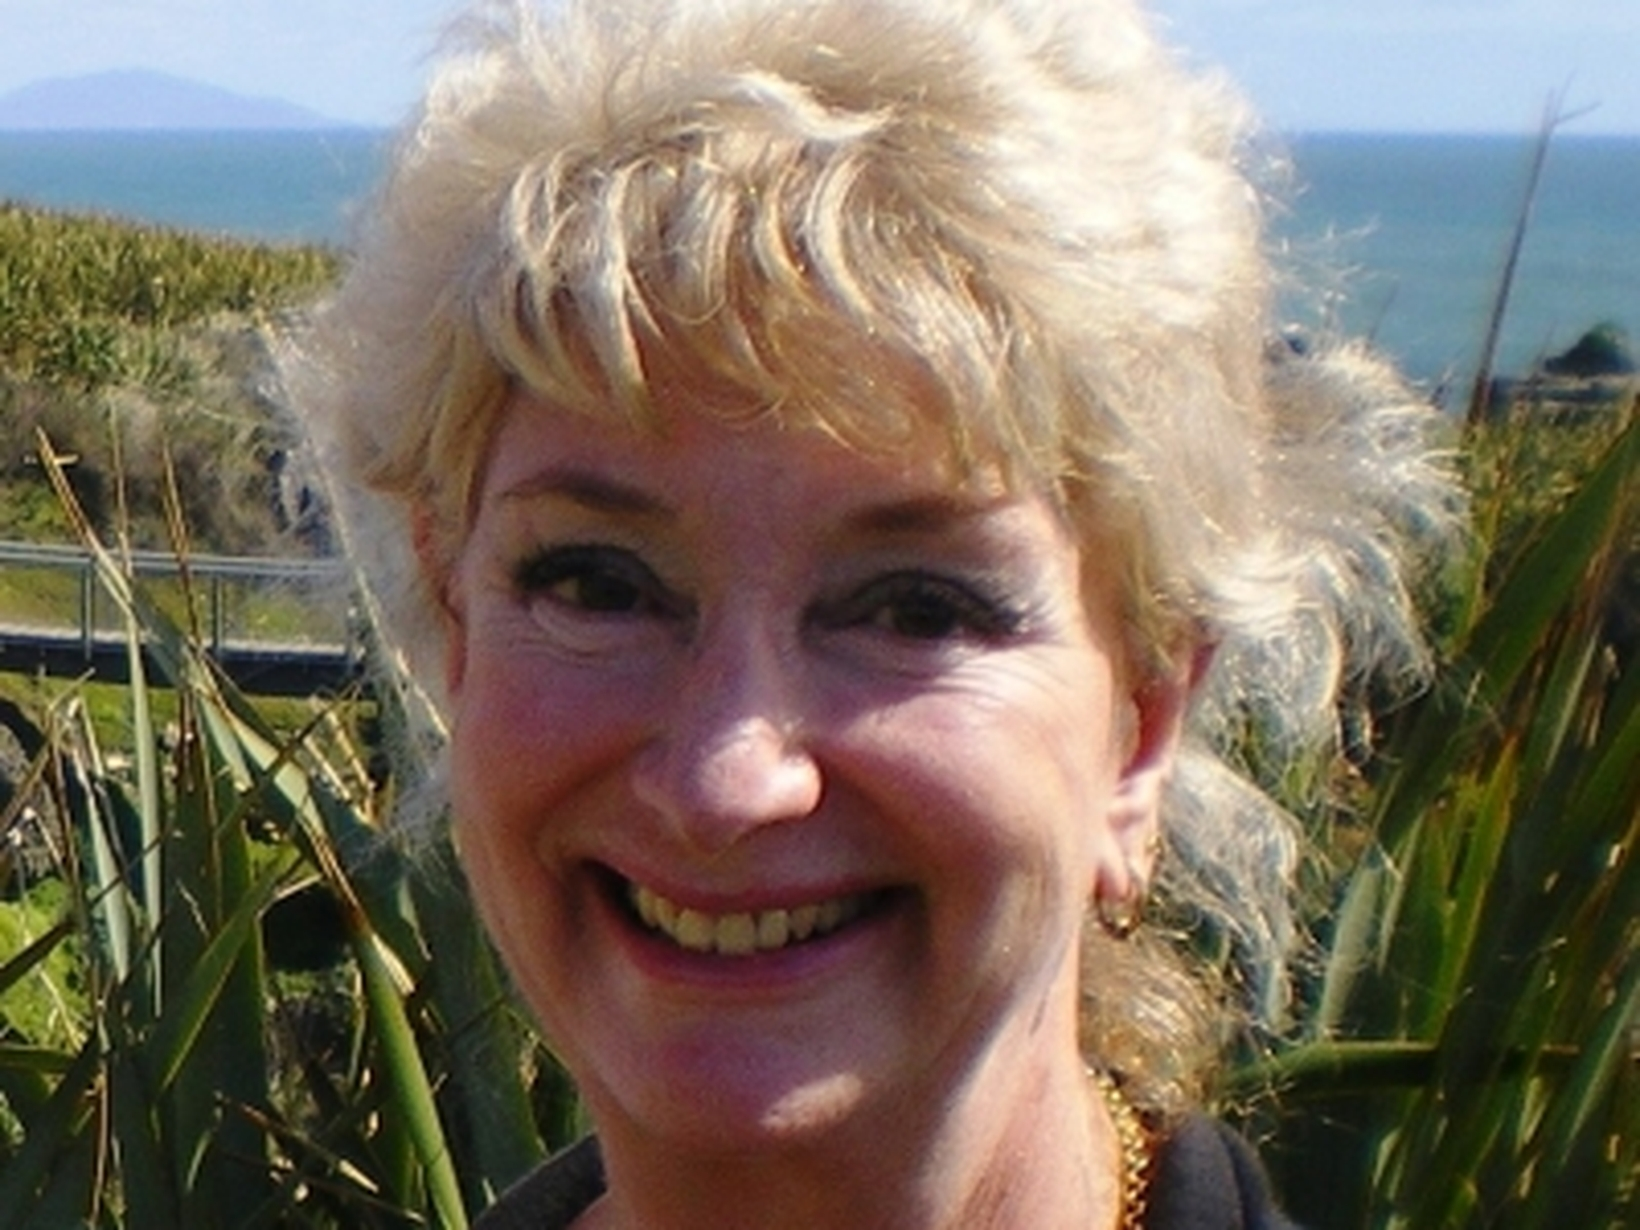 Dianne from Cabarita, New South Wales, Australia